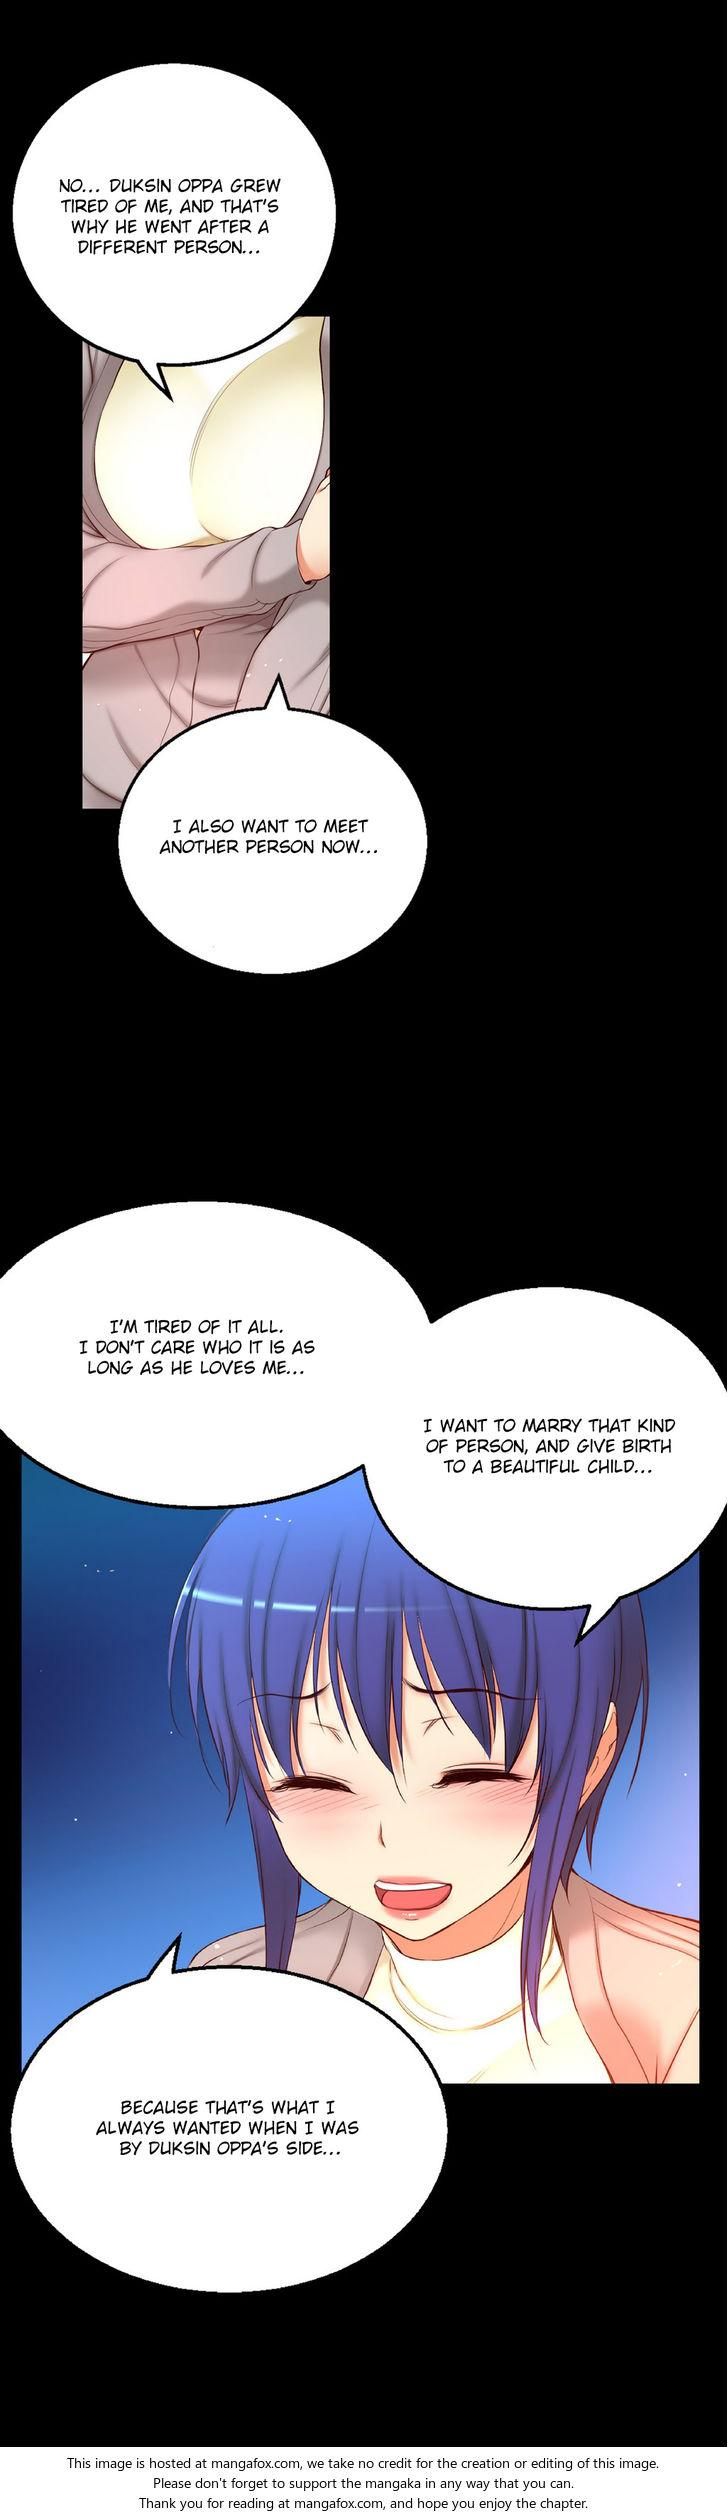 [Donggul Gom] She is Young (English) Part 1/2 1466